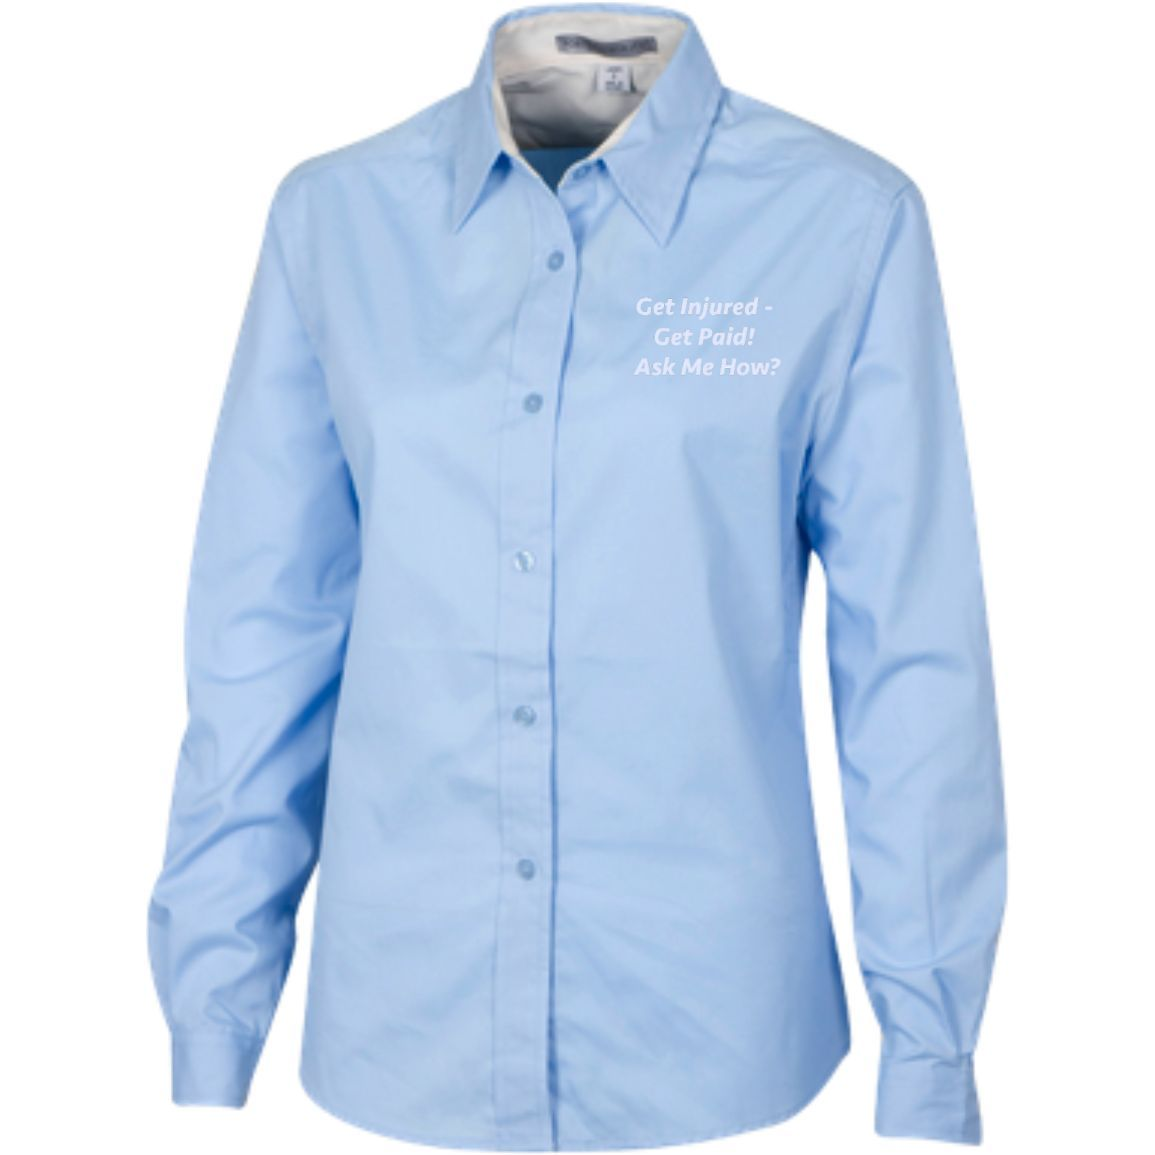 Financial Services Representative Marketing Apparel Ladies Customized Long Sleeve Blouse